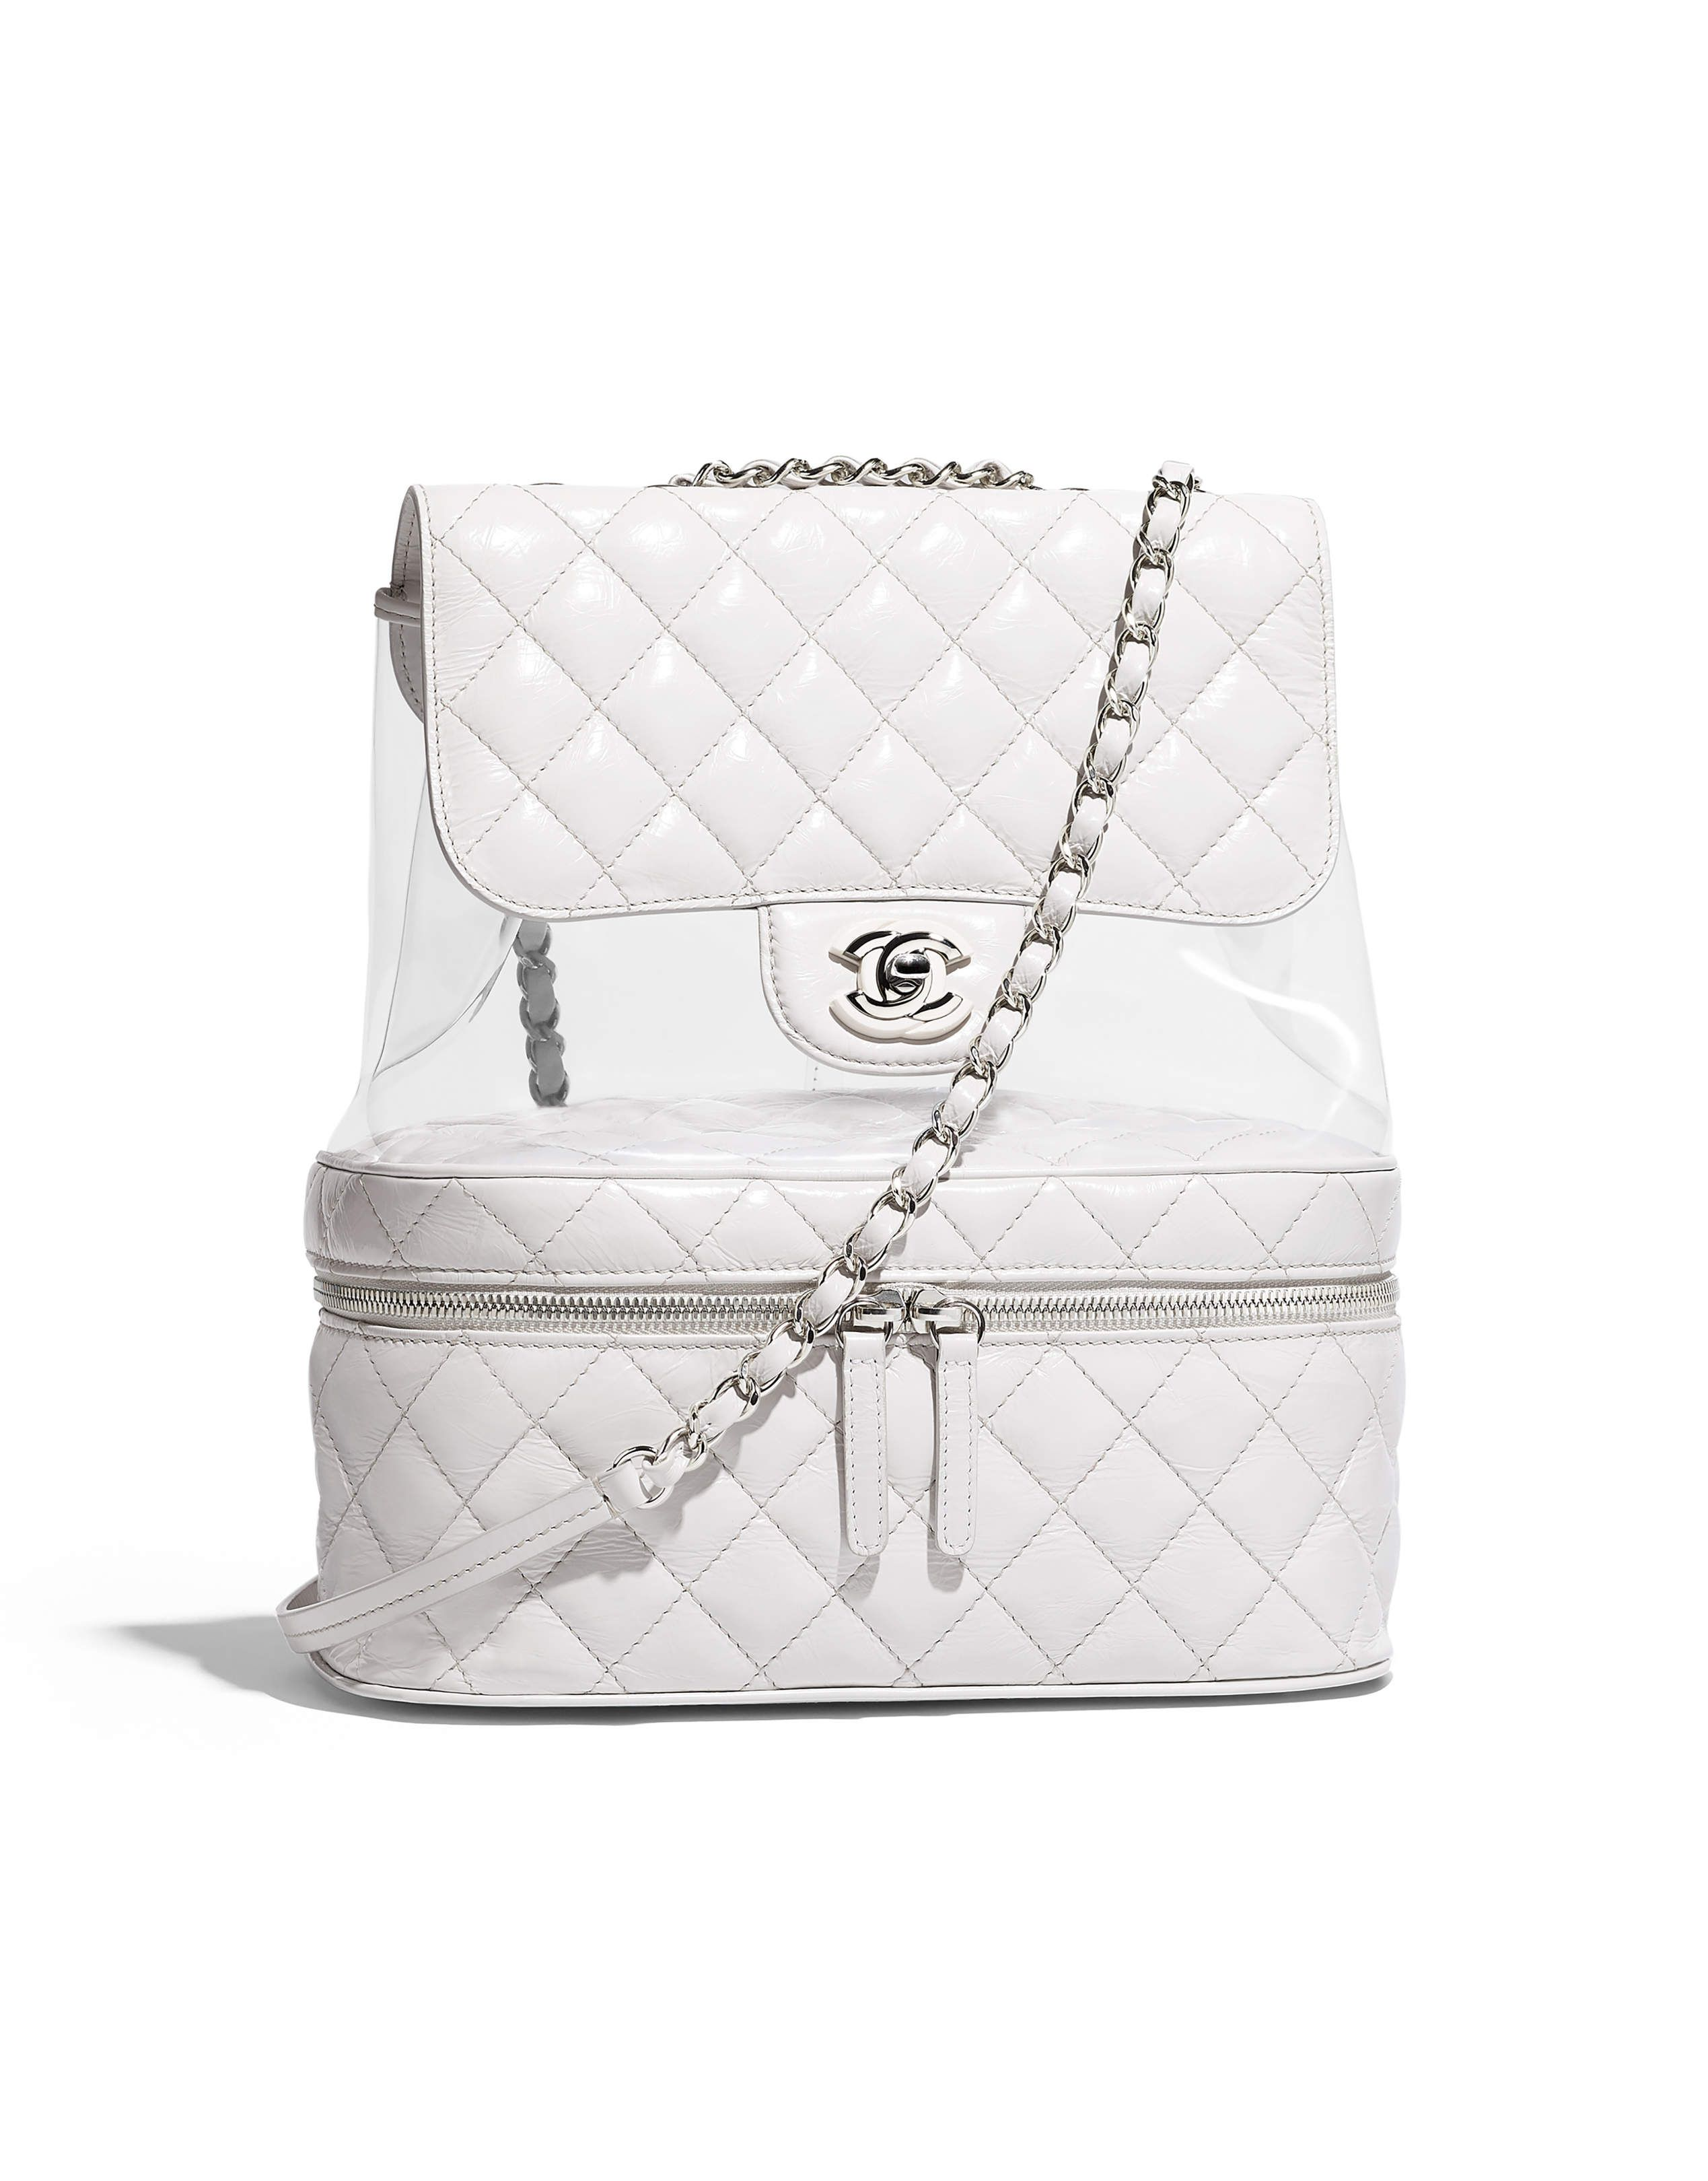 fb8c013978a7 Chanel - SS2018